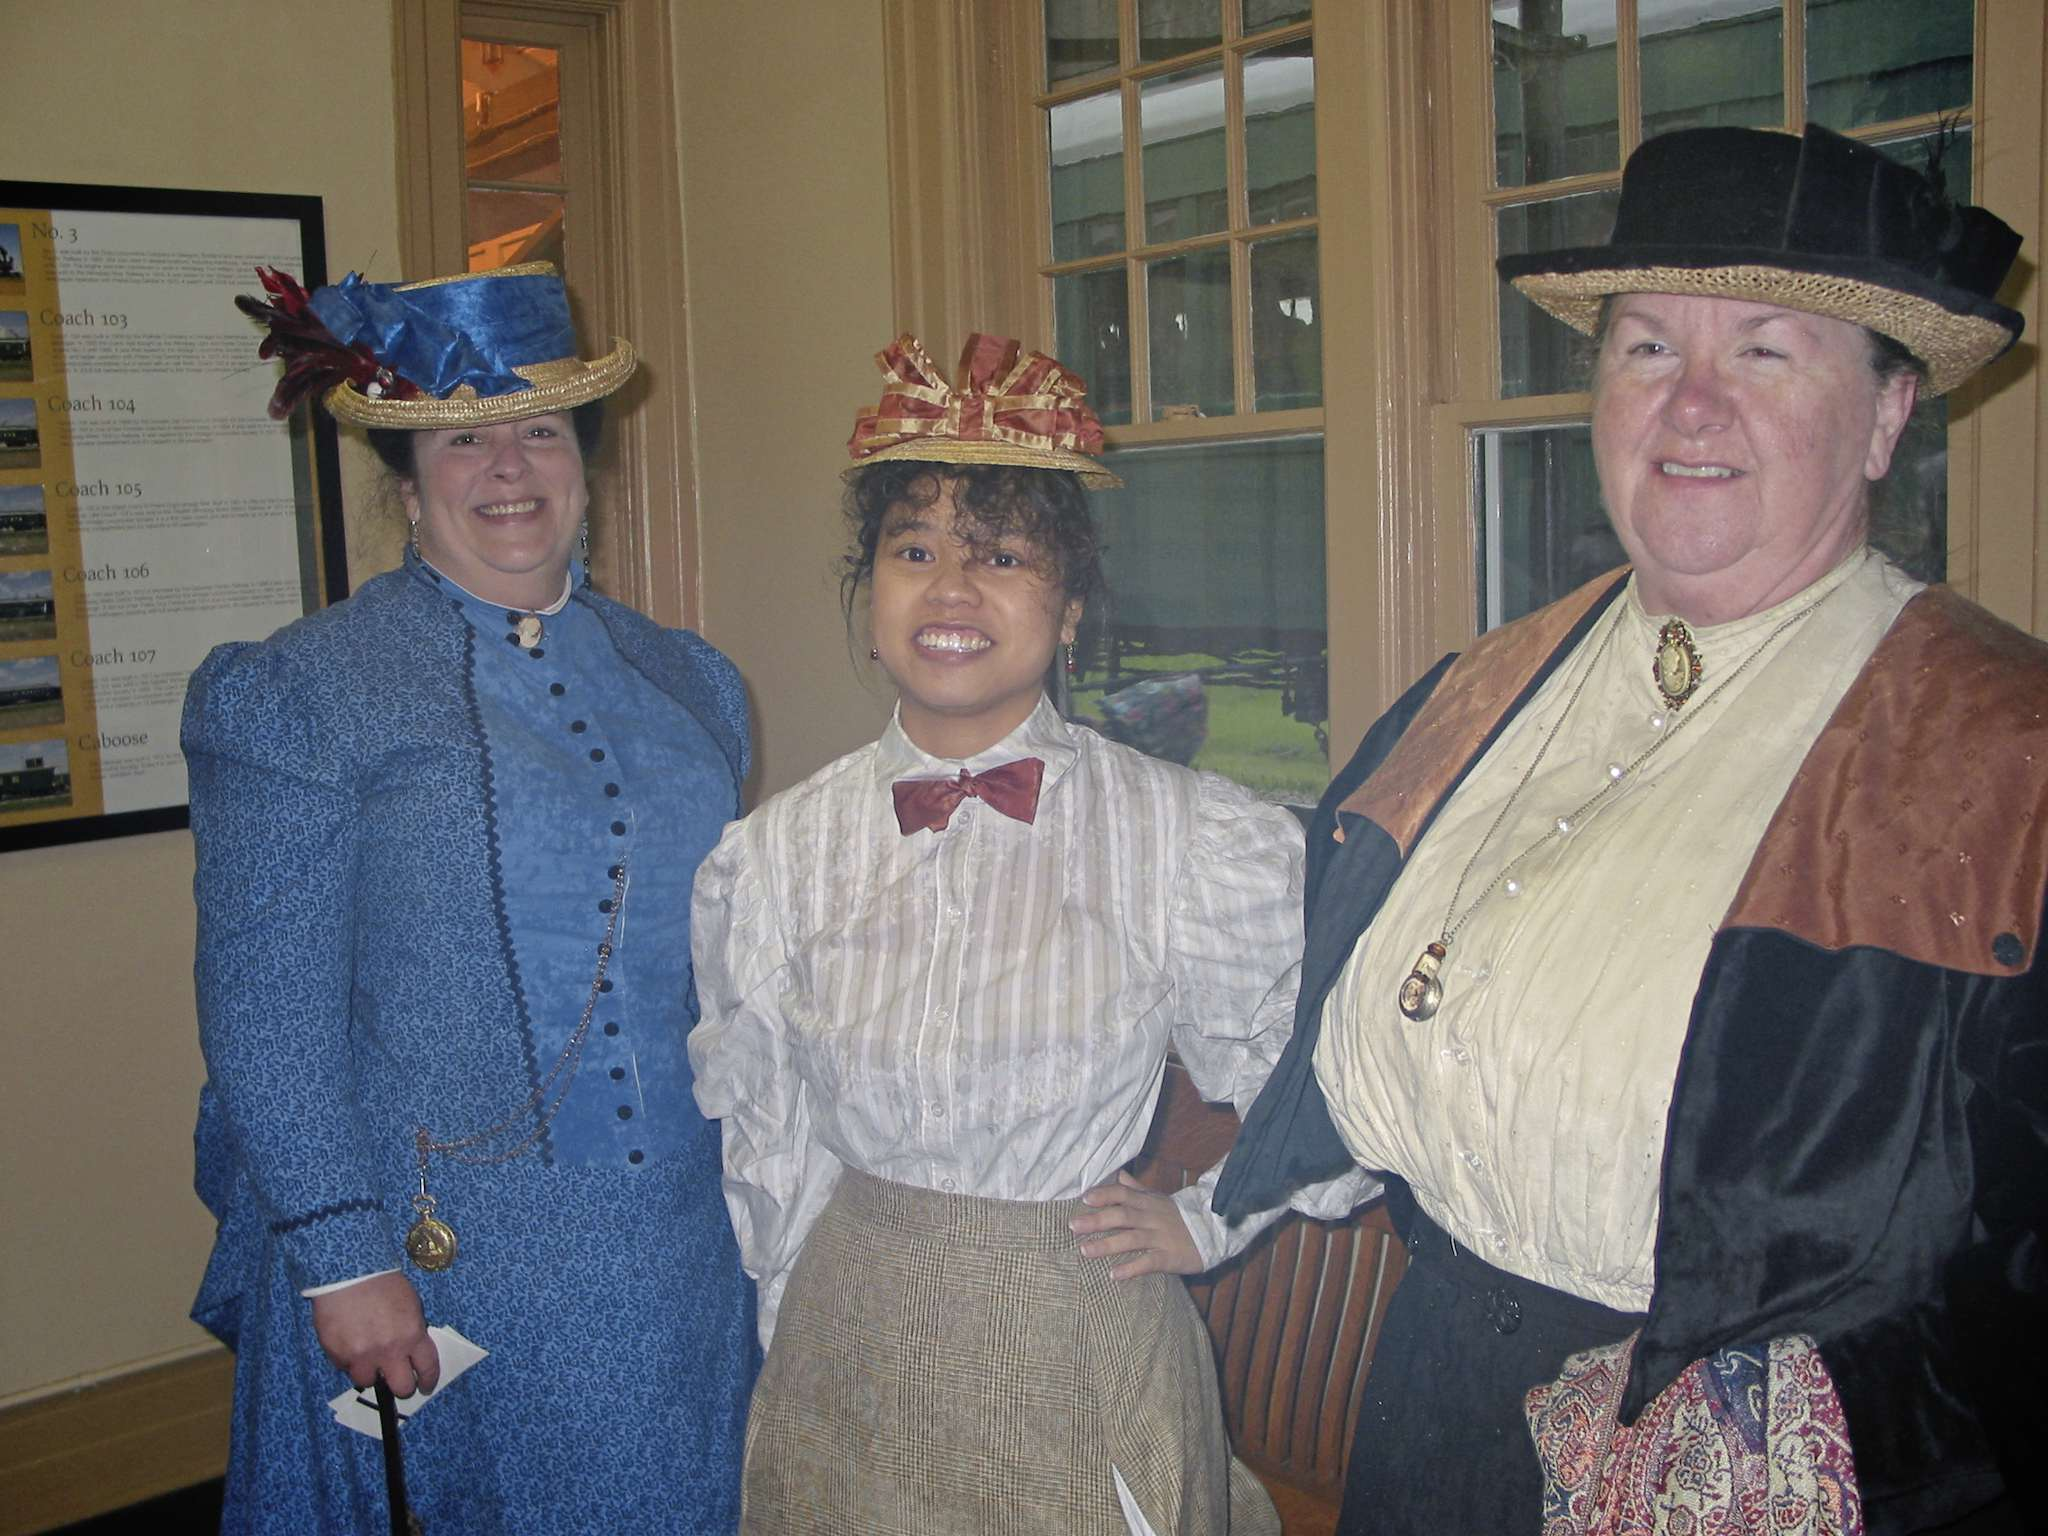 (From left) Dawn Neufeld, Sabrina Mark and Arlene Cross, members of the Victorian at Heart group of Winnipeg, were dressed appropriately for a train journey on the Prairie Dog Central Railway on June 12.